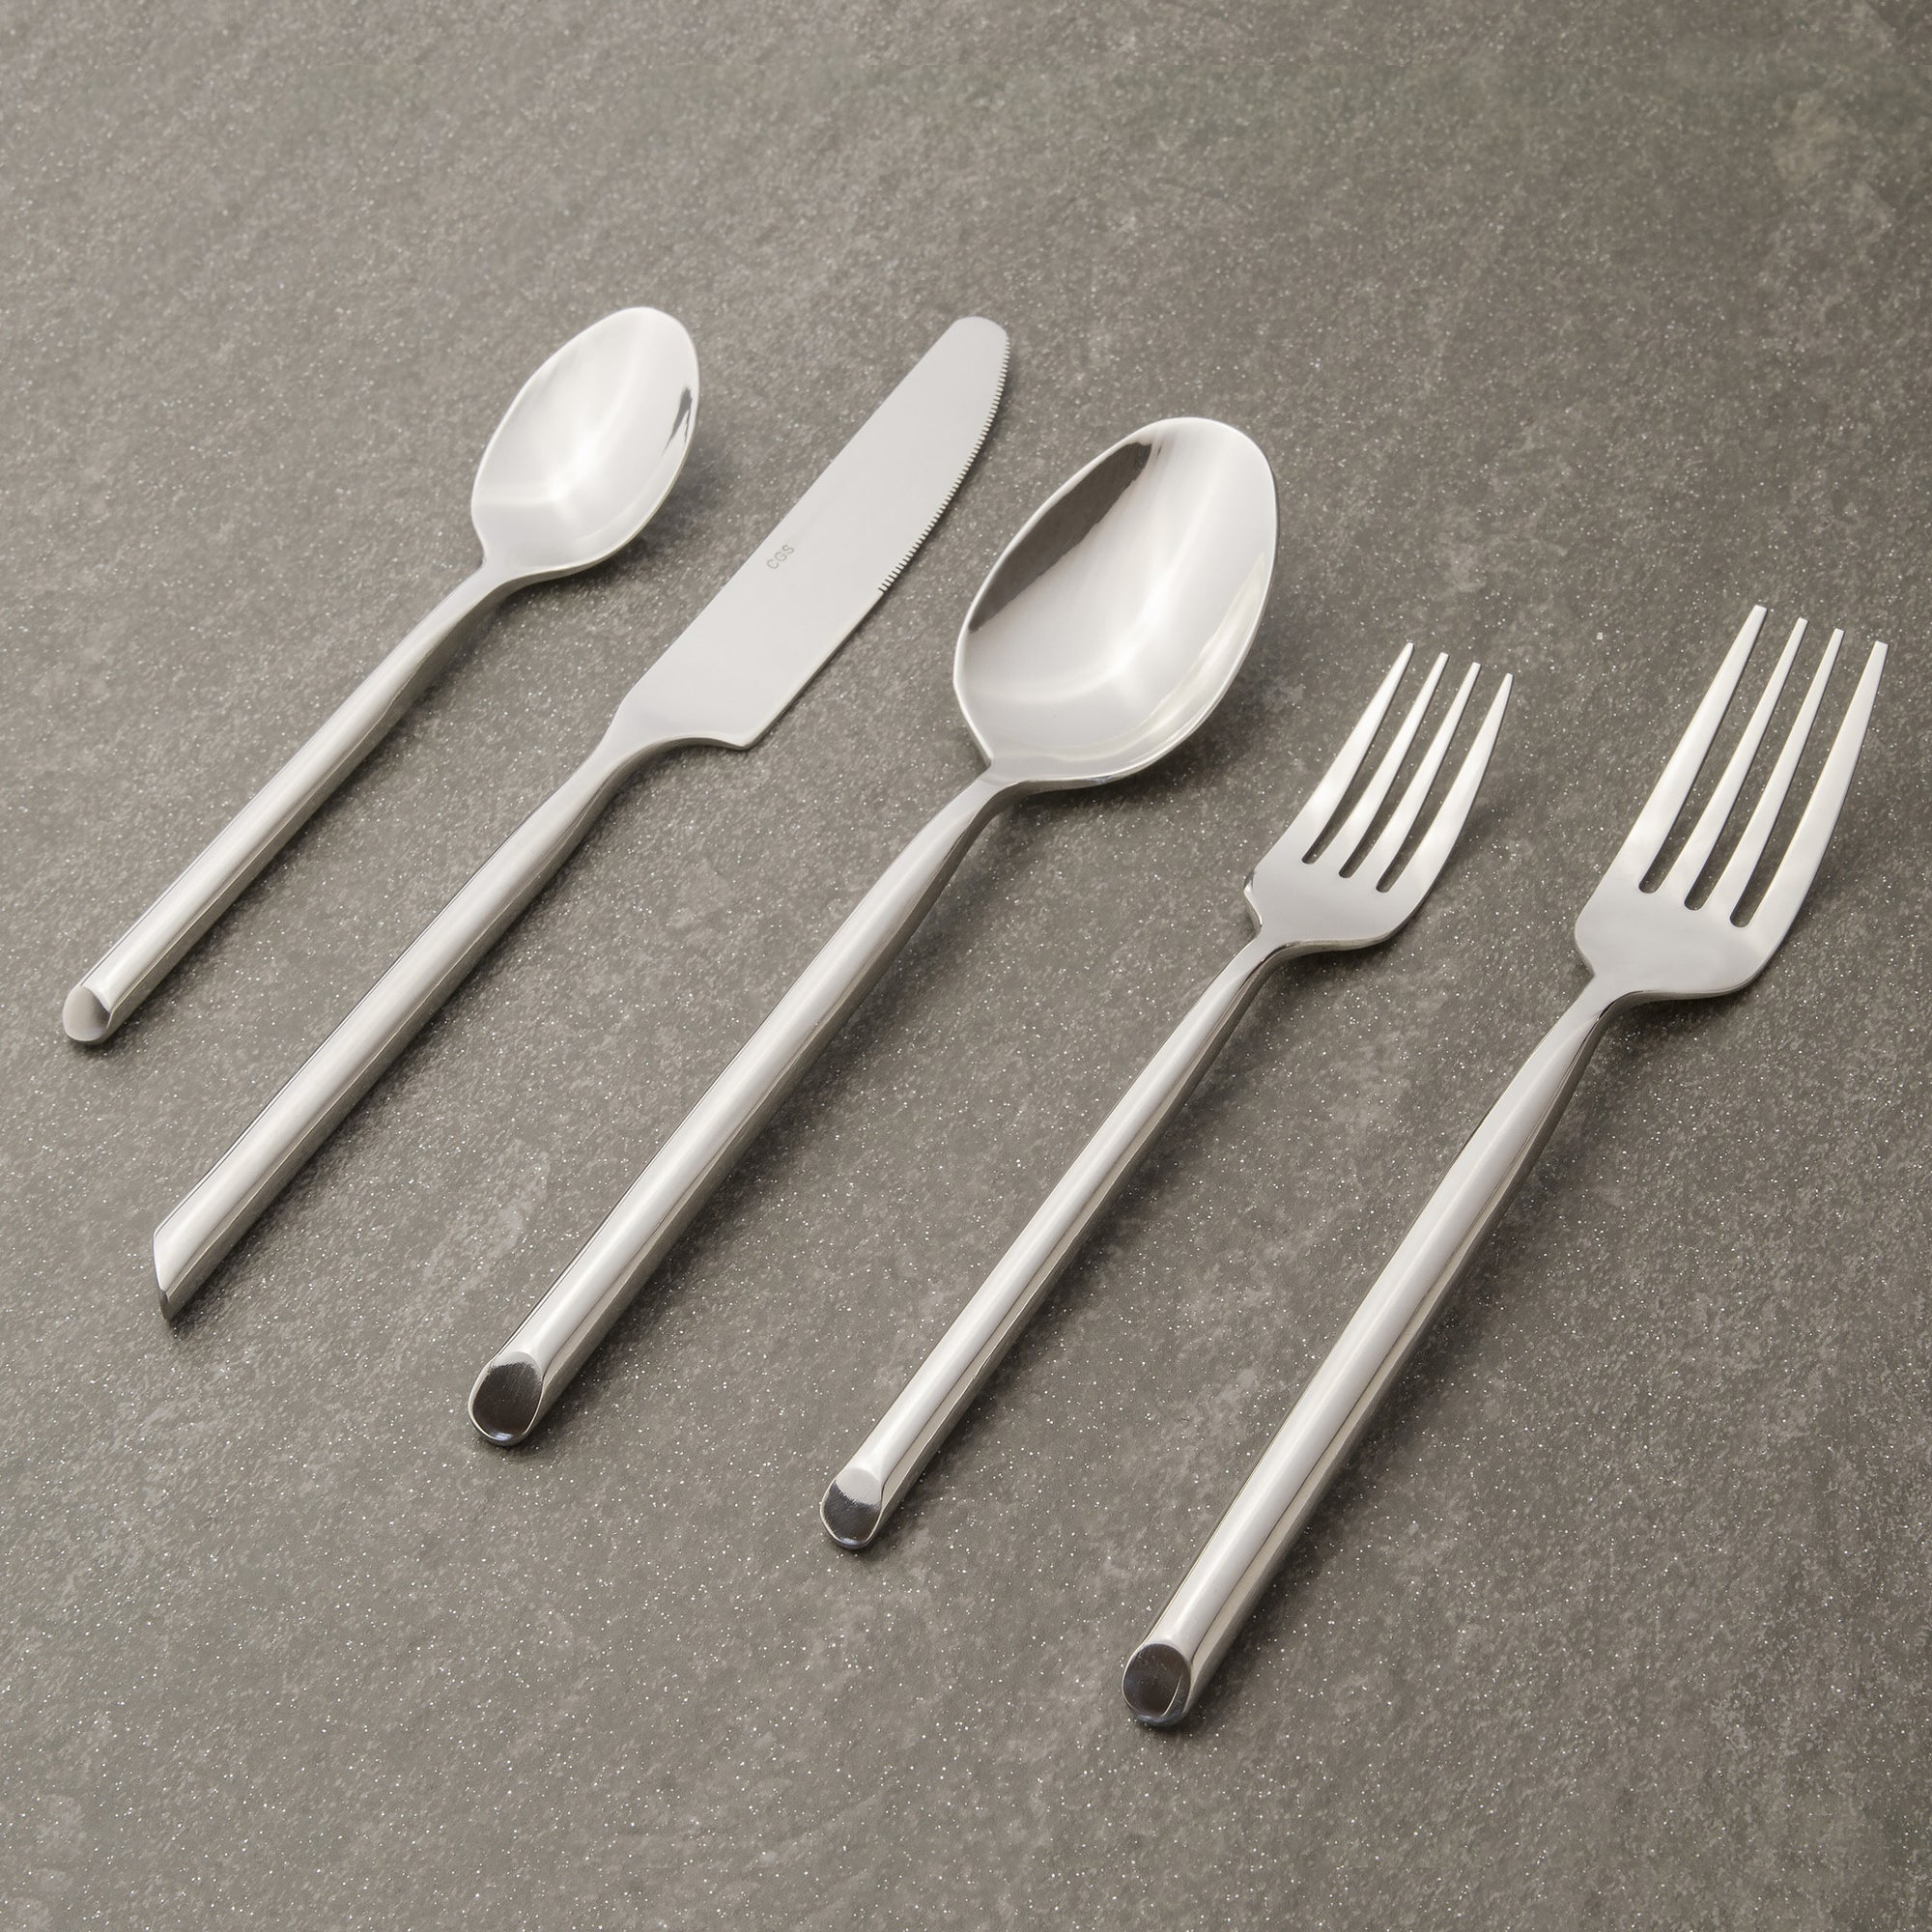 South Beach Flatware | 12-pc set per utensil Flatware CGS Tableshop - ROVE AND SWIG